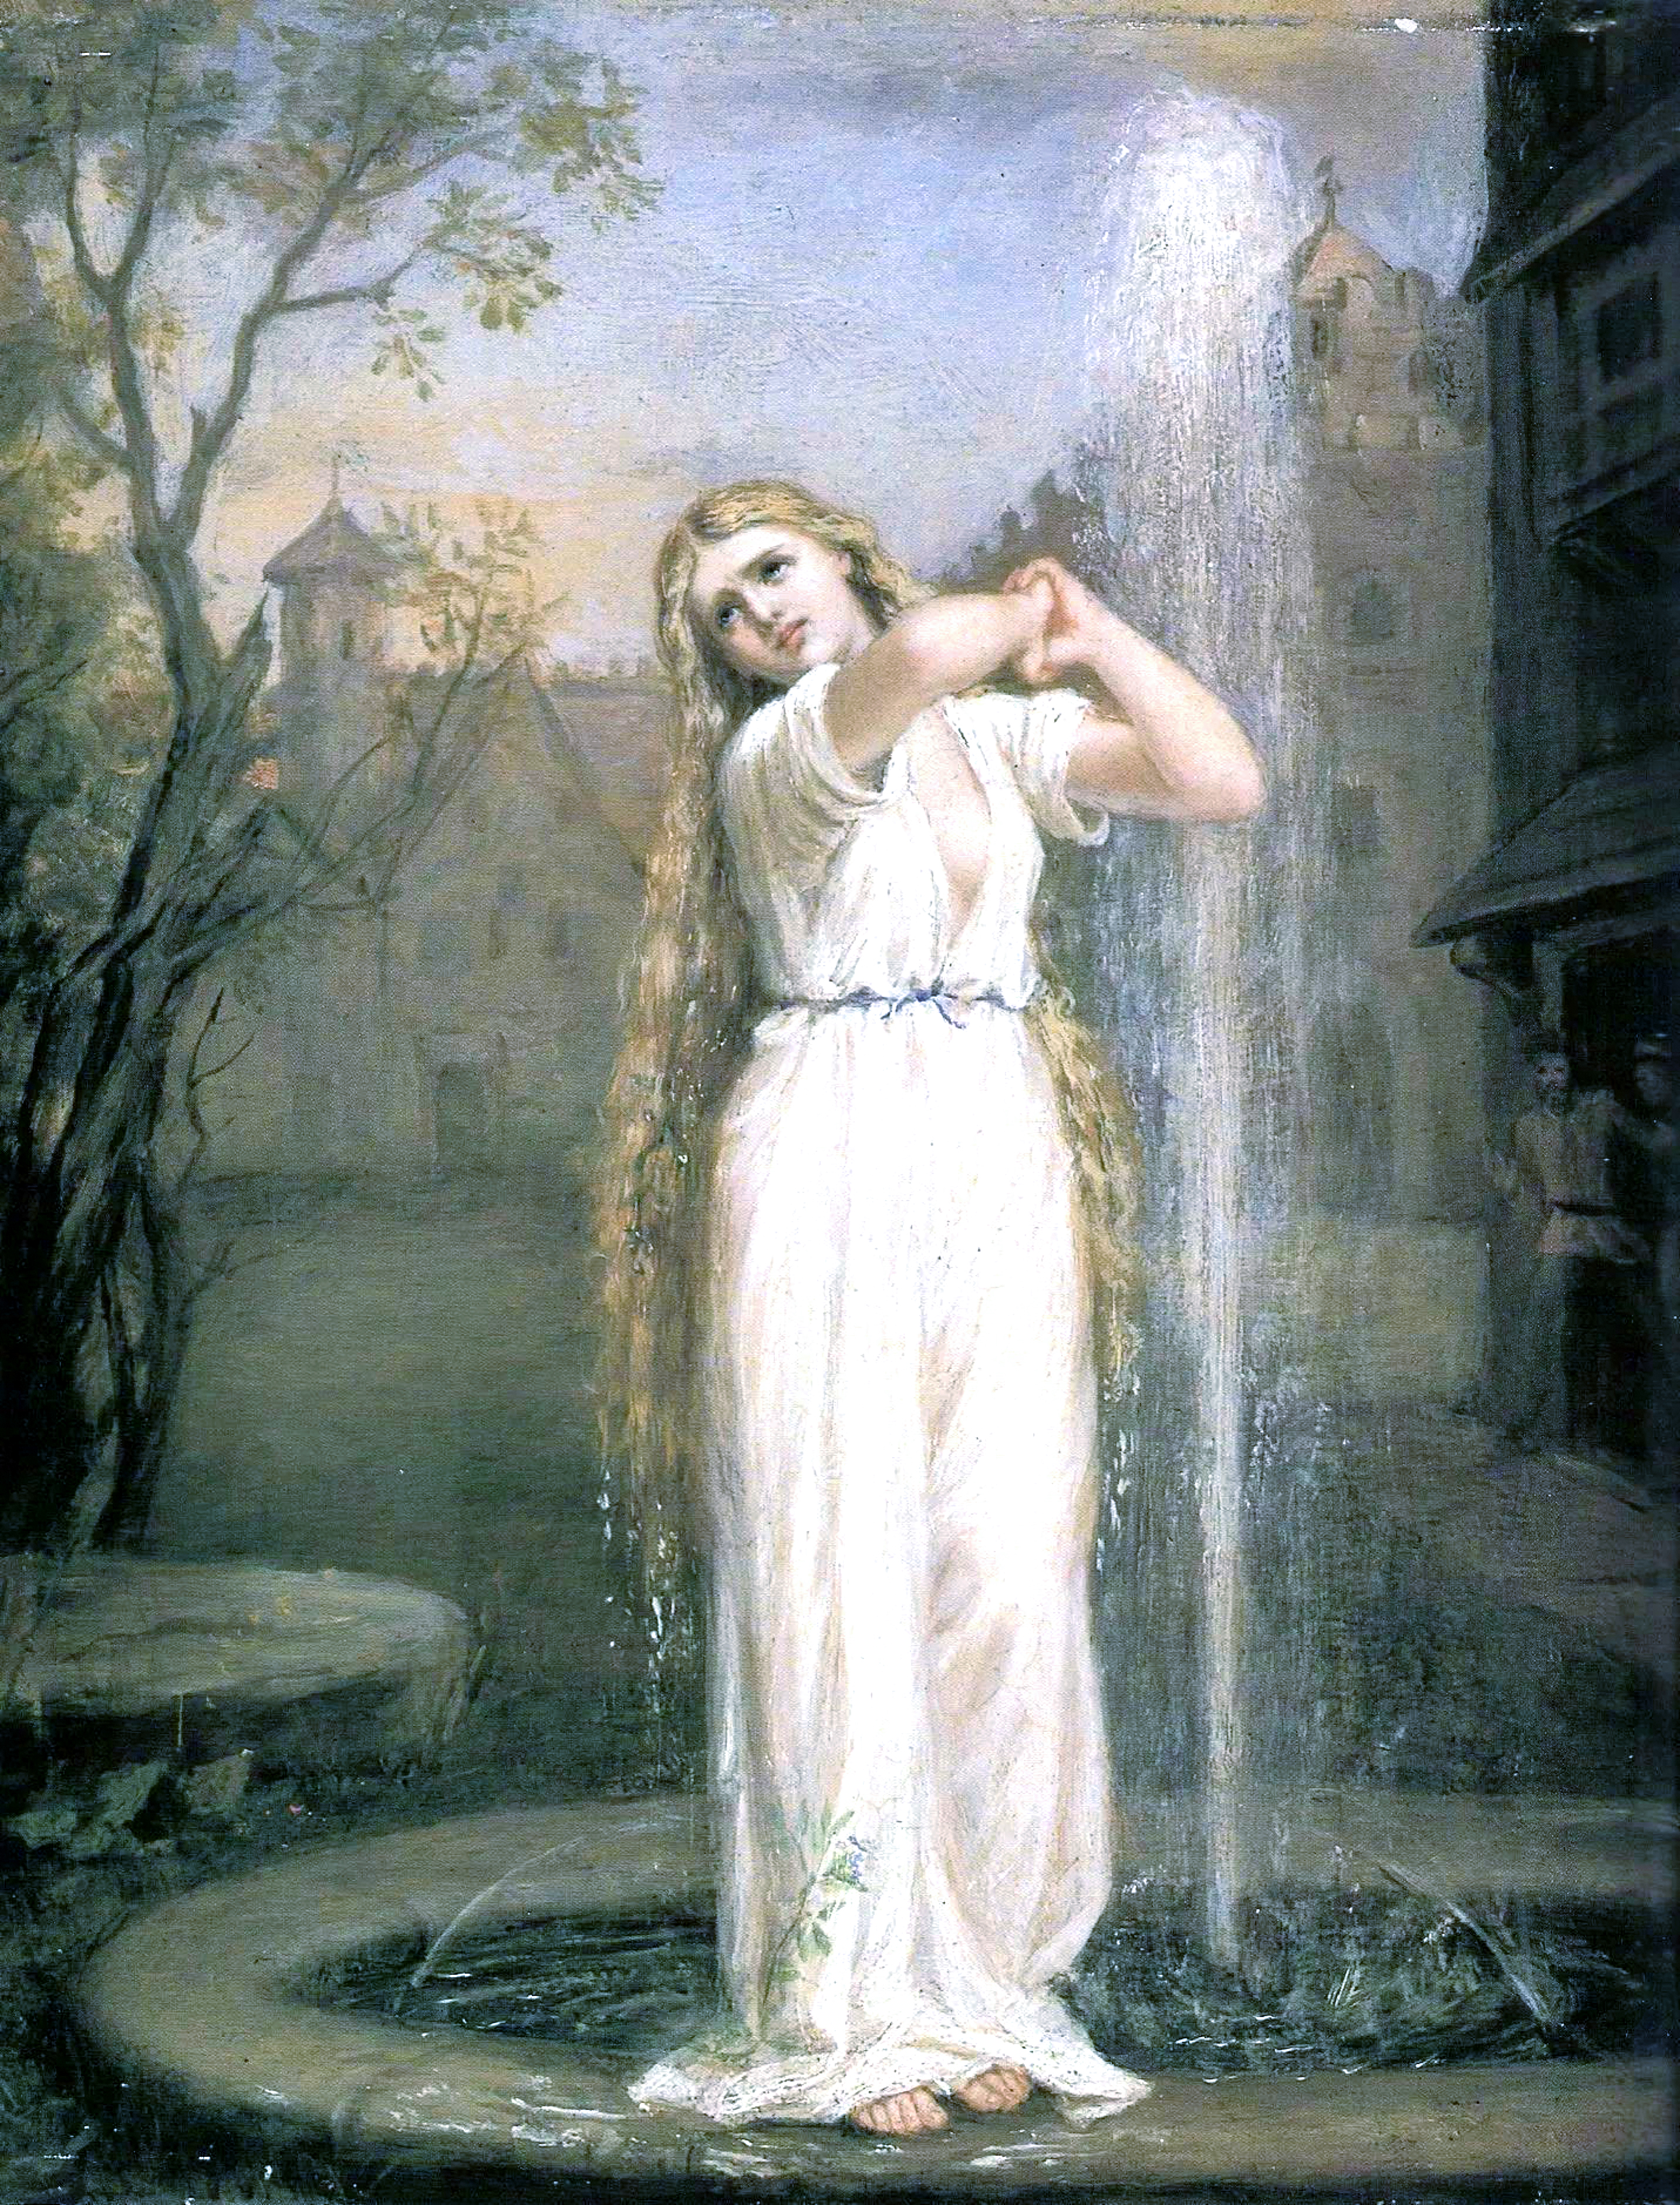 artwork, woman standing on edge of fountain